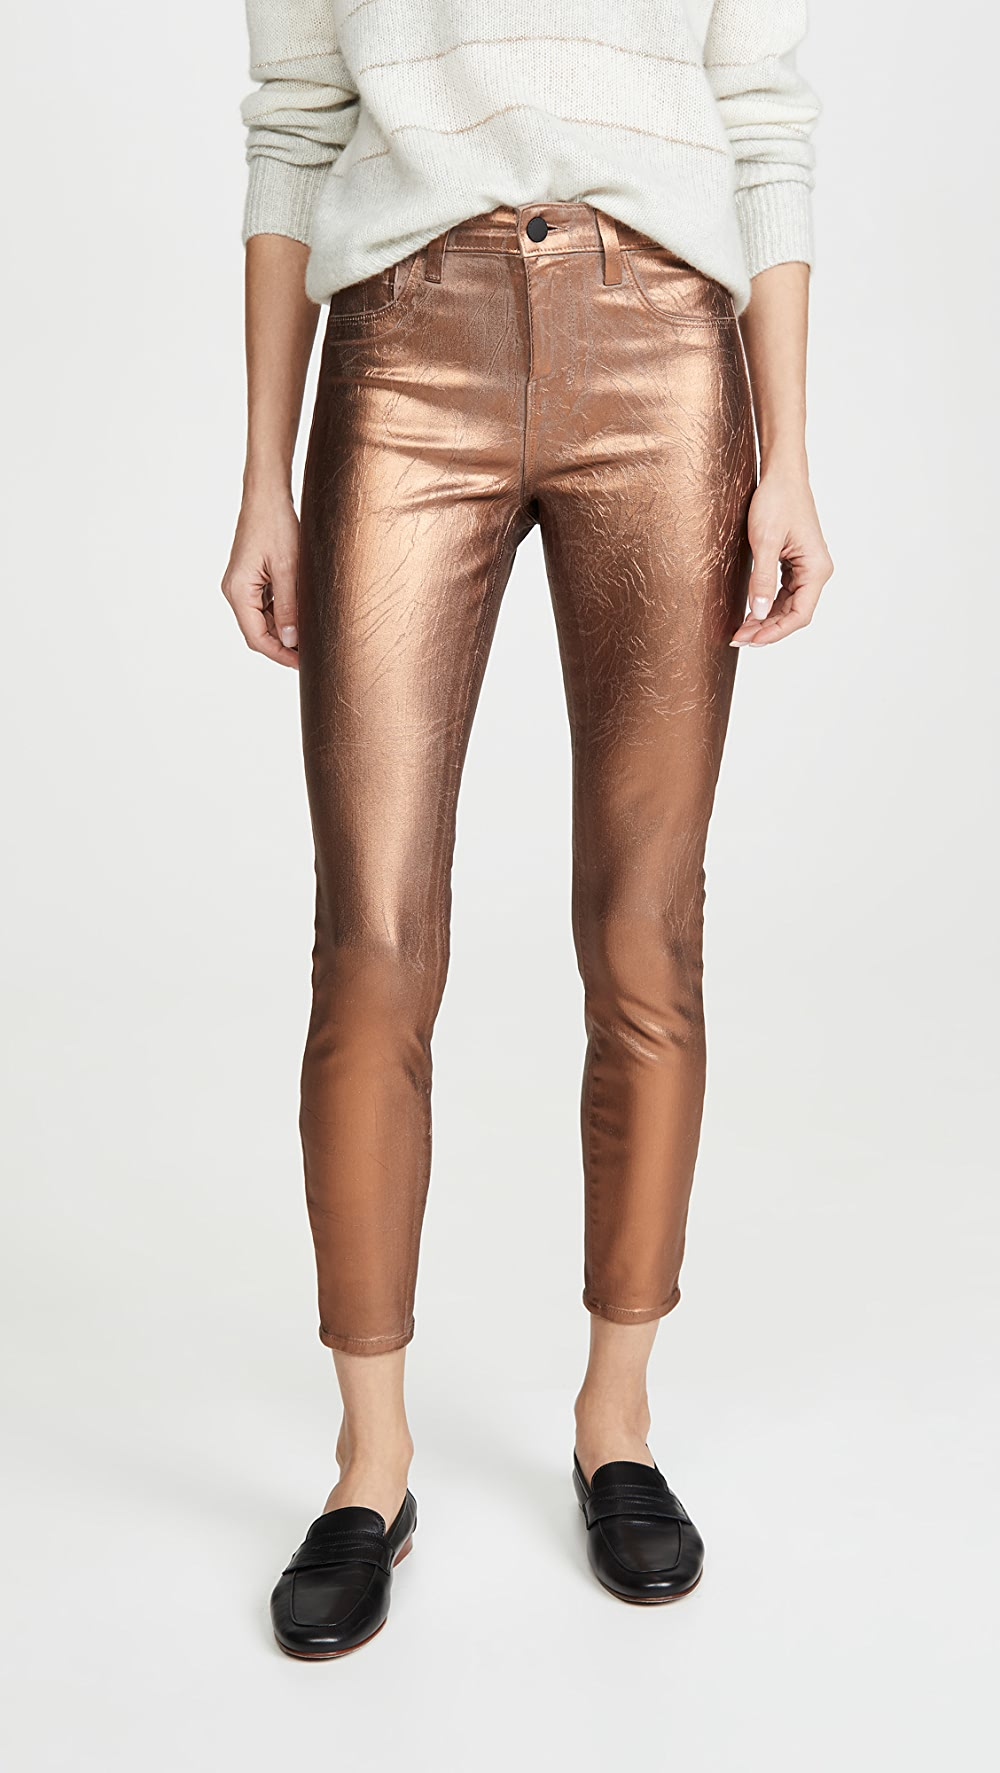 Romantic L'agence - Margot High Rise Skinny Jeans Aromatic Character And Agreeable Taste